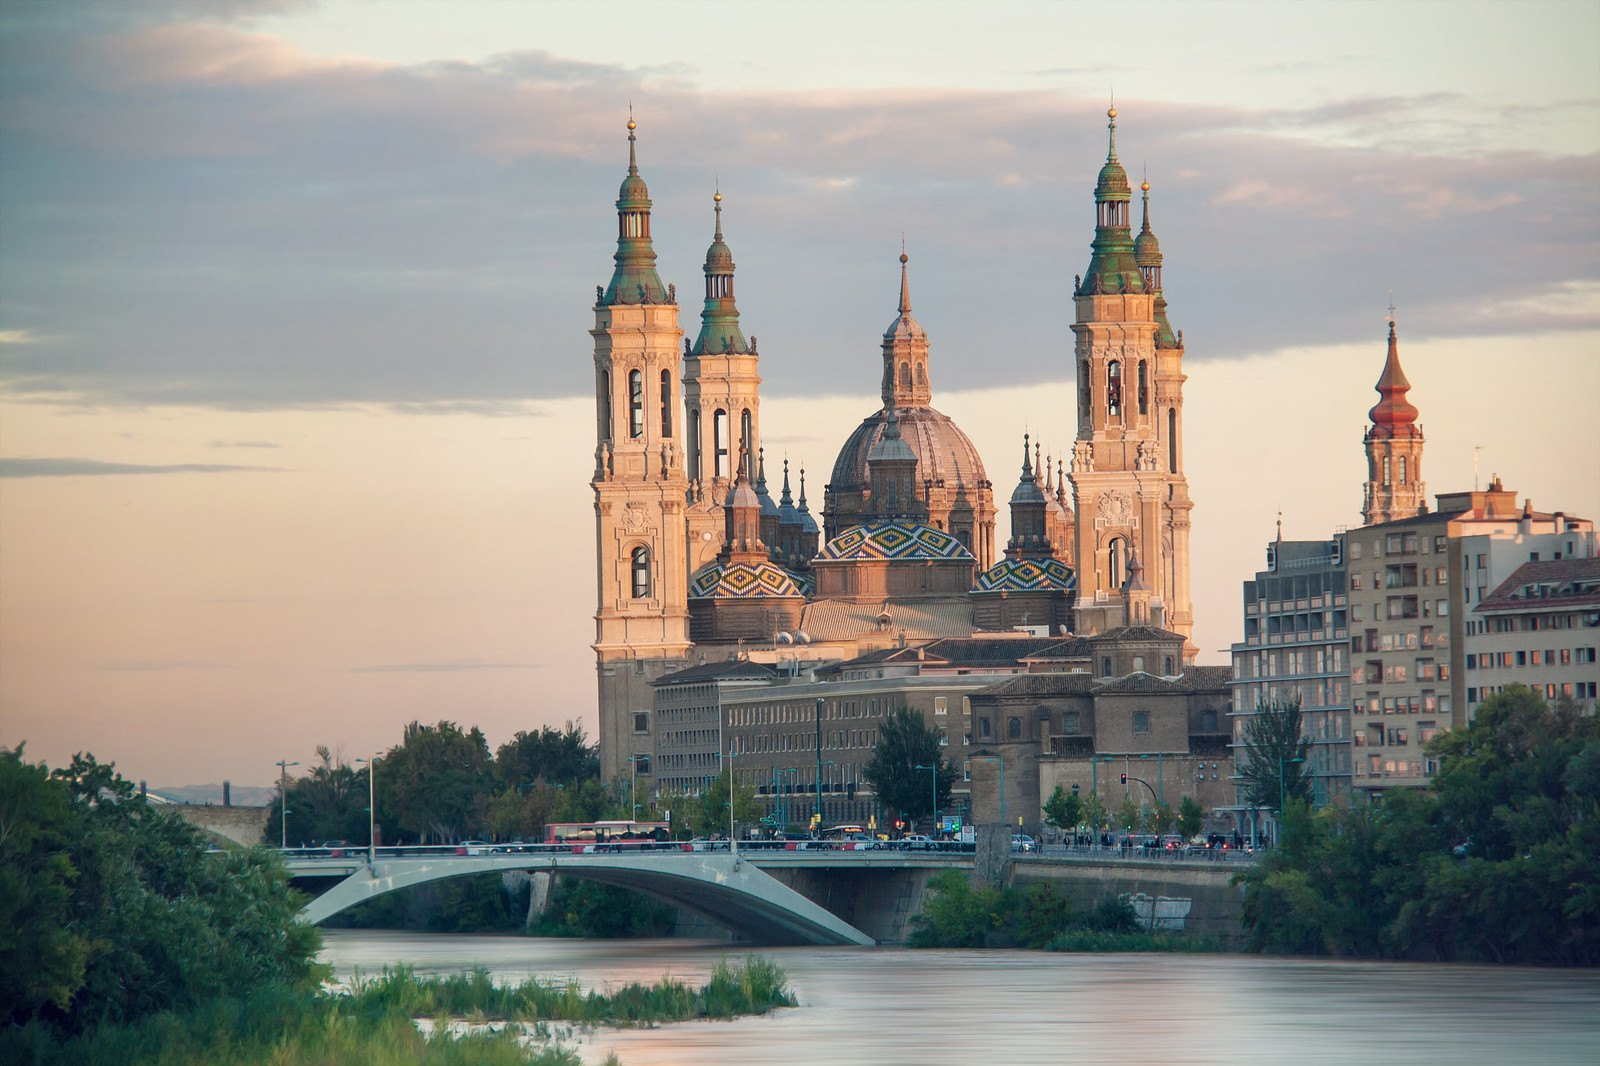 Weekend trip to Zaragoza, Spain with a sample quick itinerary